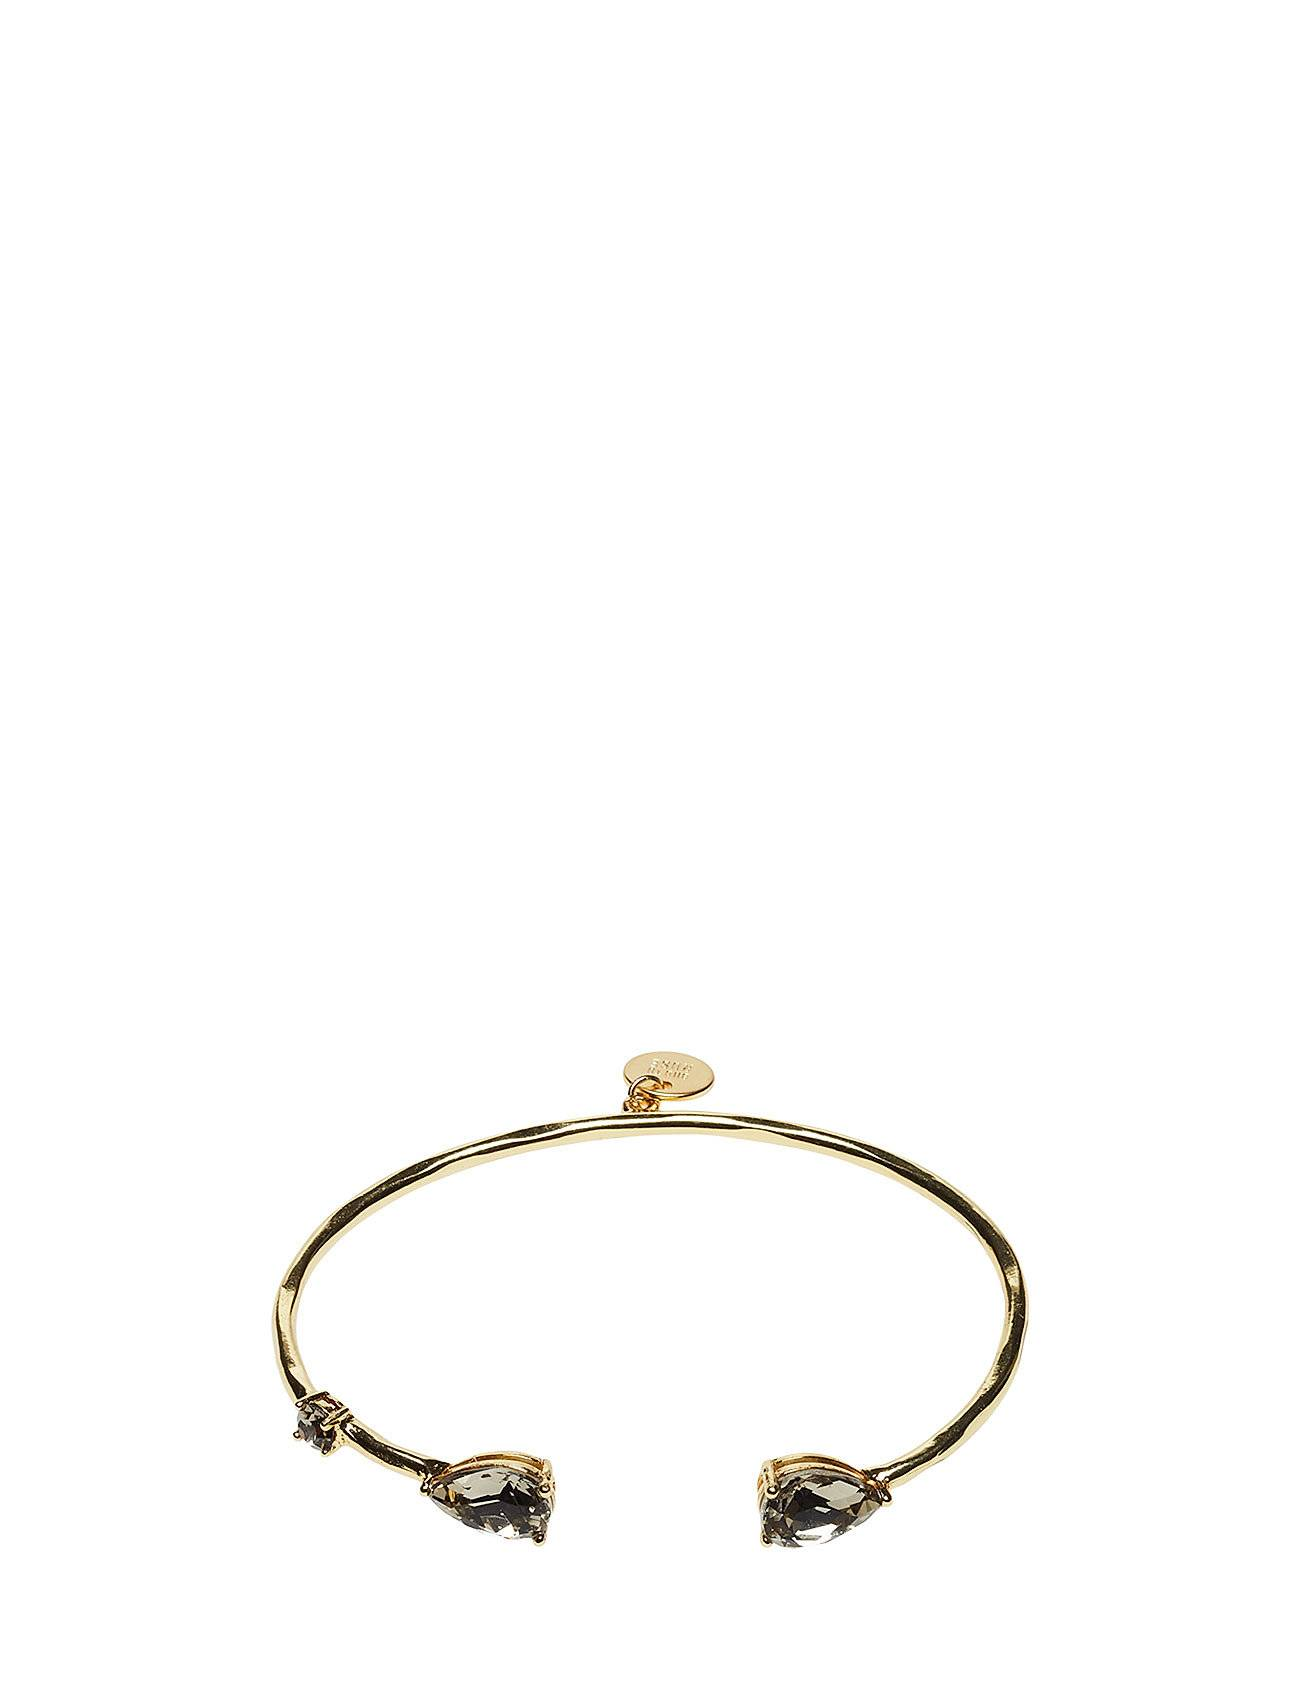 Bud to rose Carrie Greige Bangle